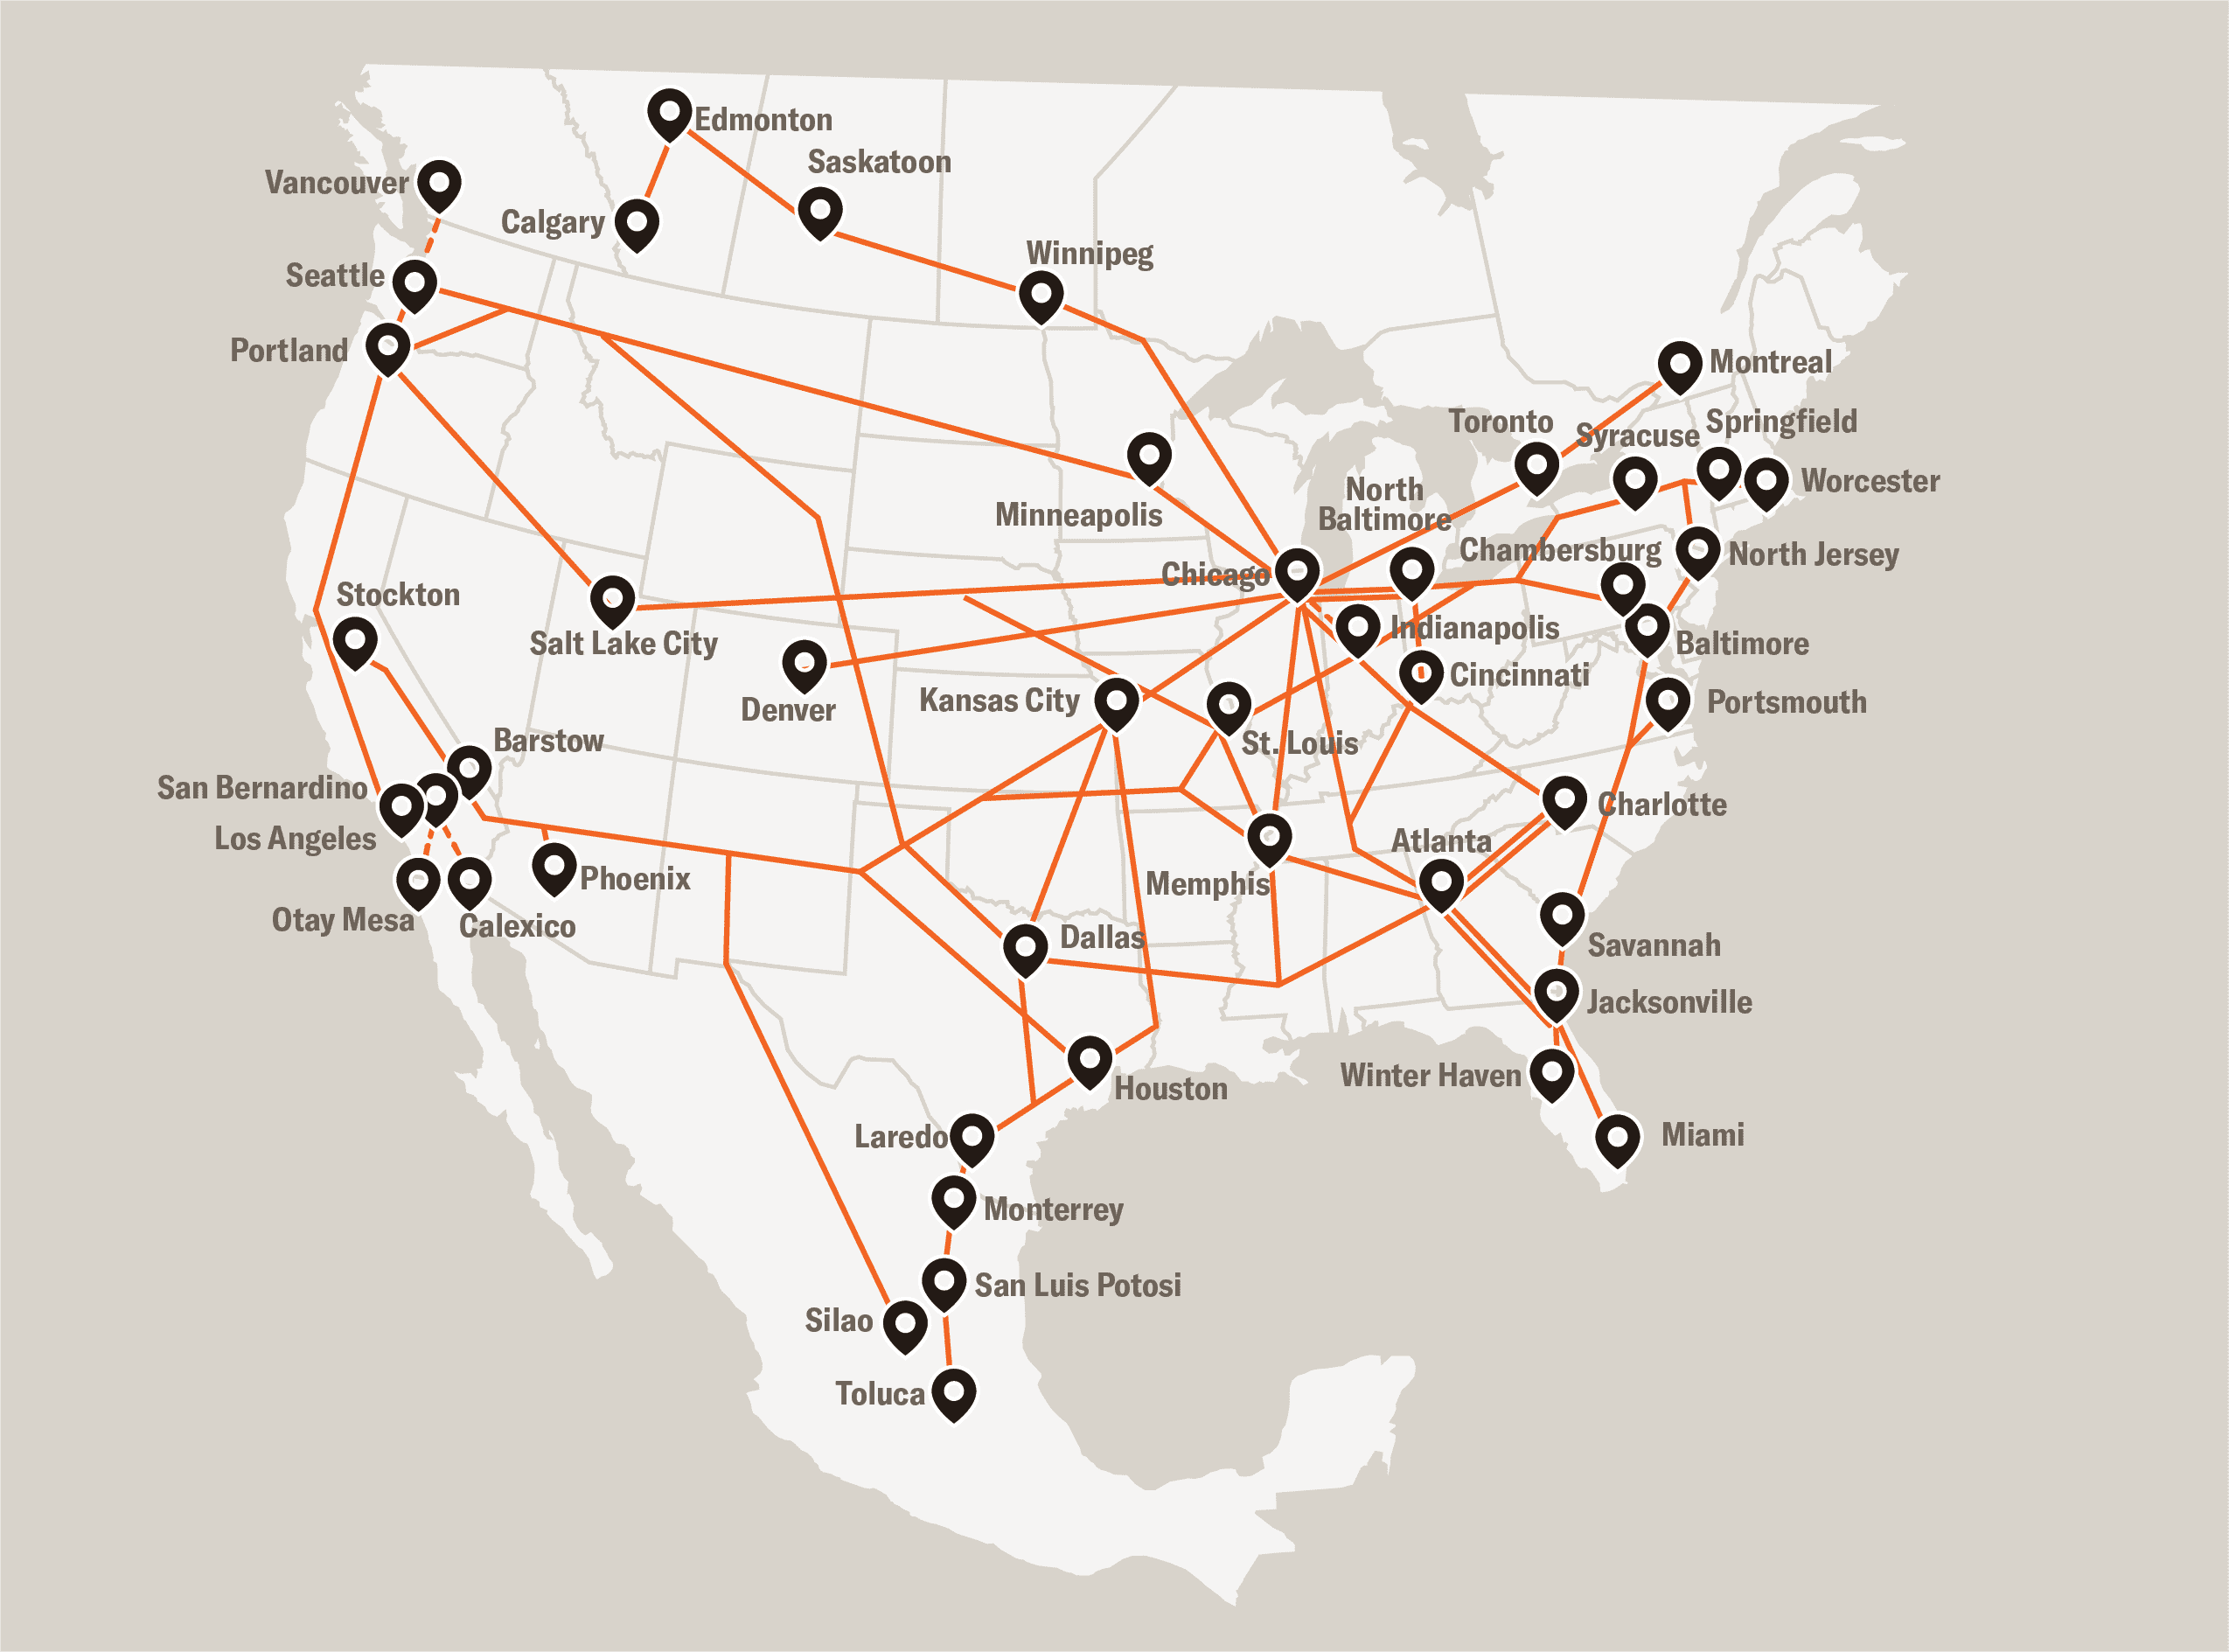 Schneider intermodal network map